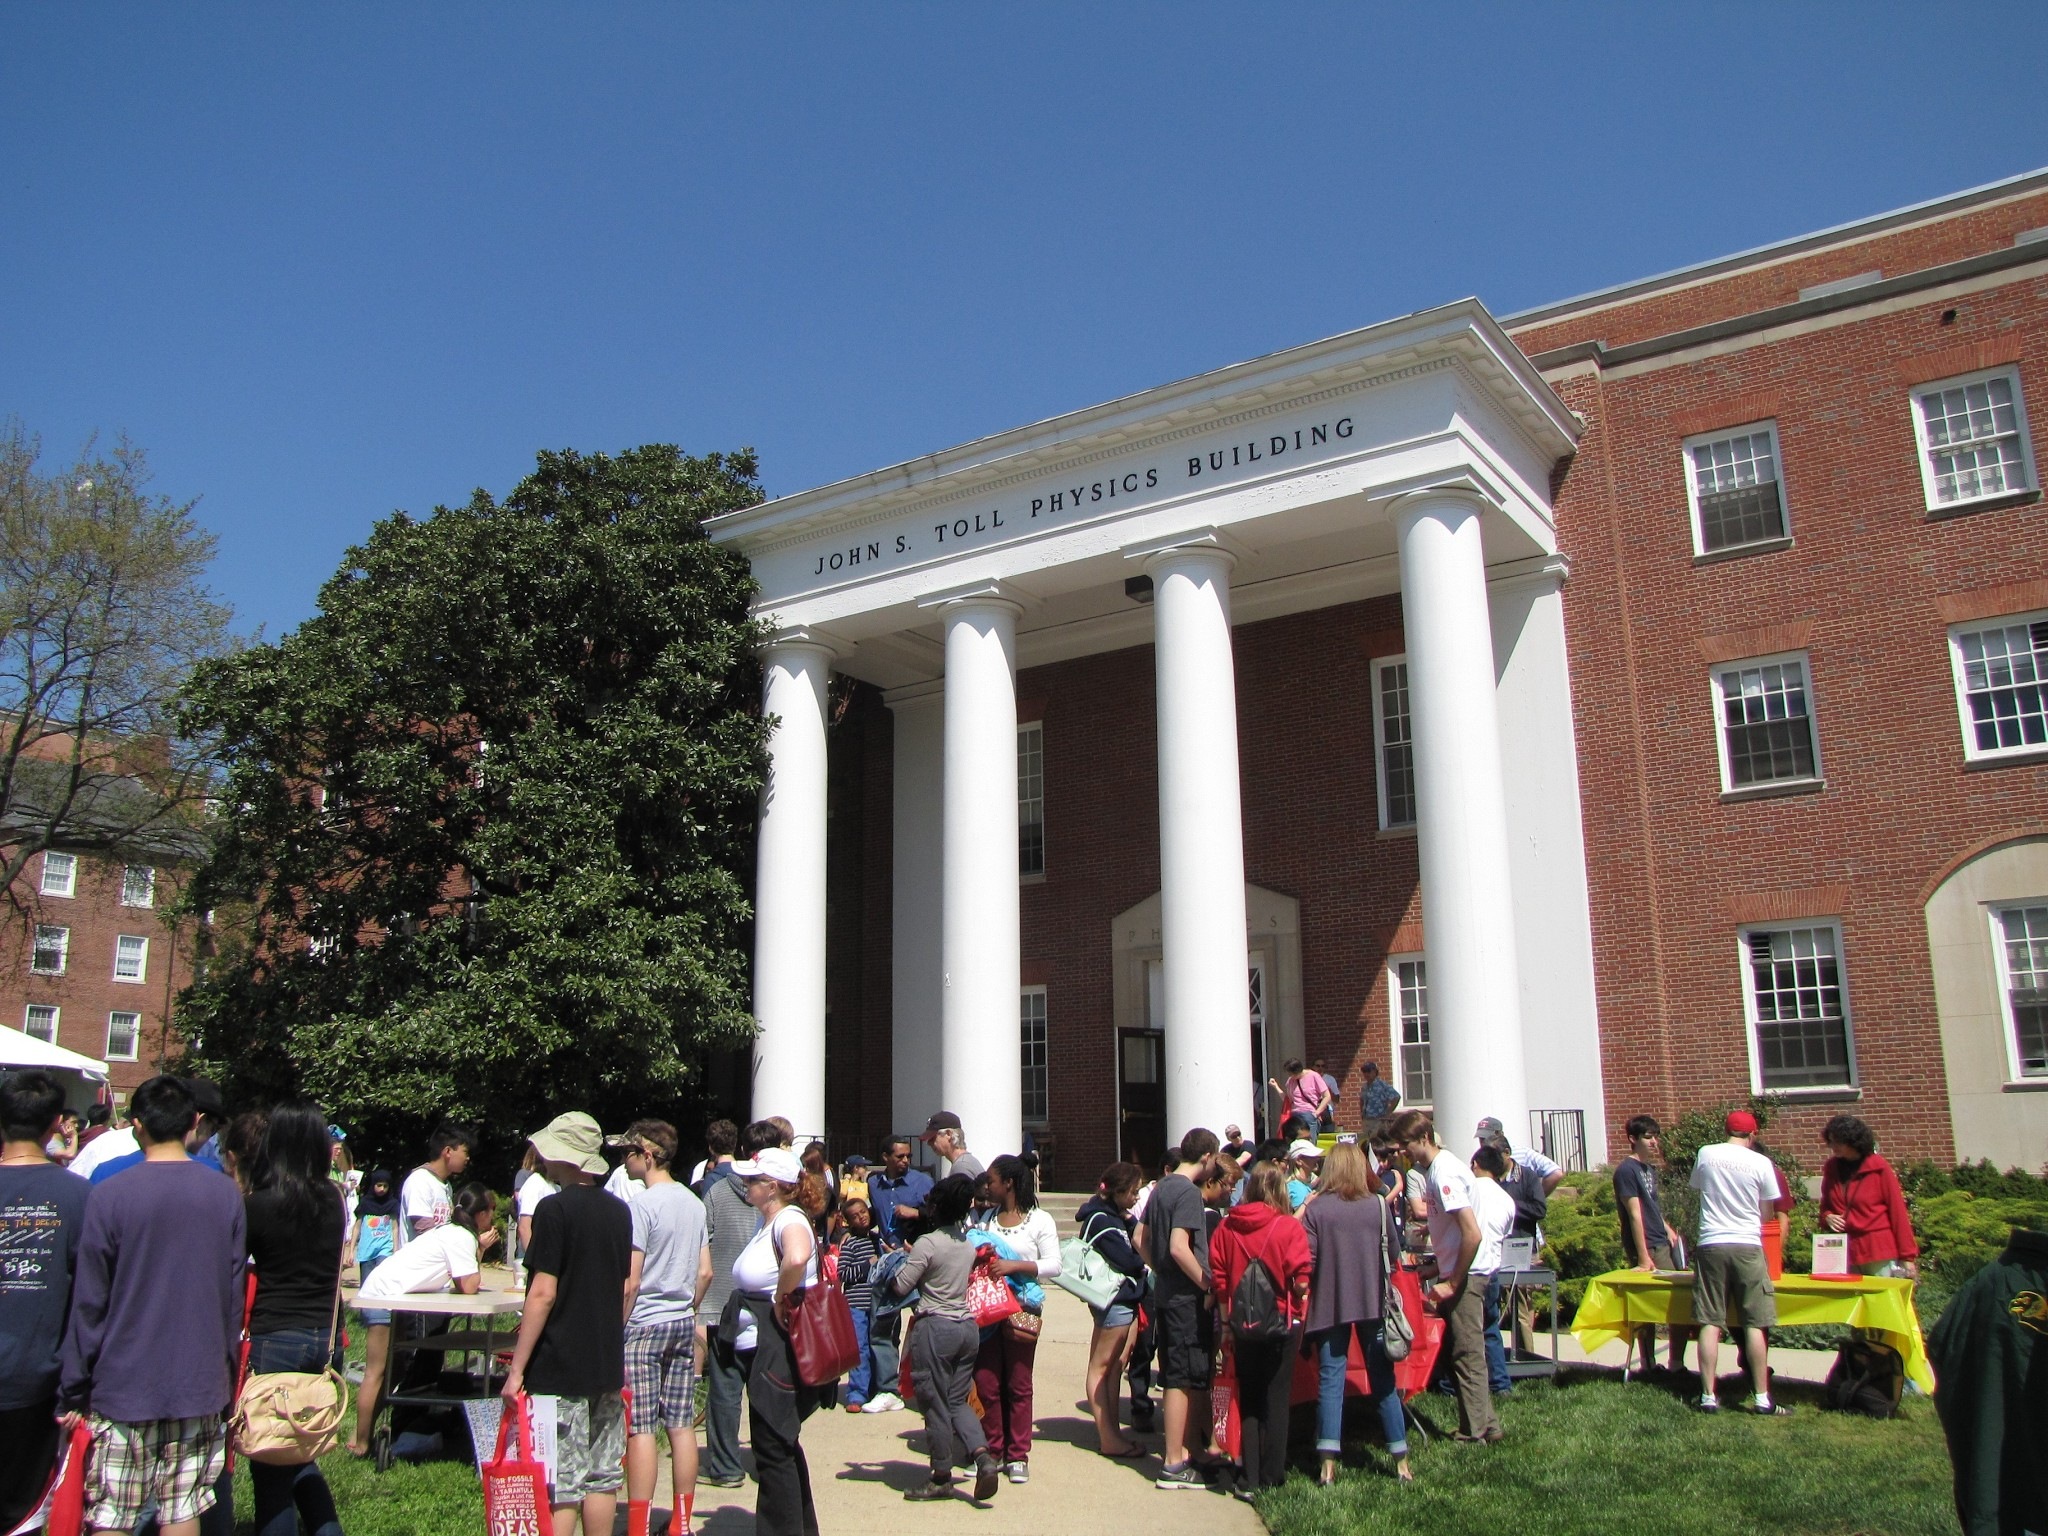 Crowd in front of the Toll Physics Building during Maryland Day 2013